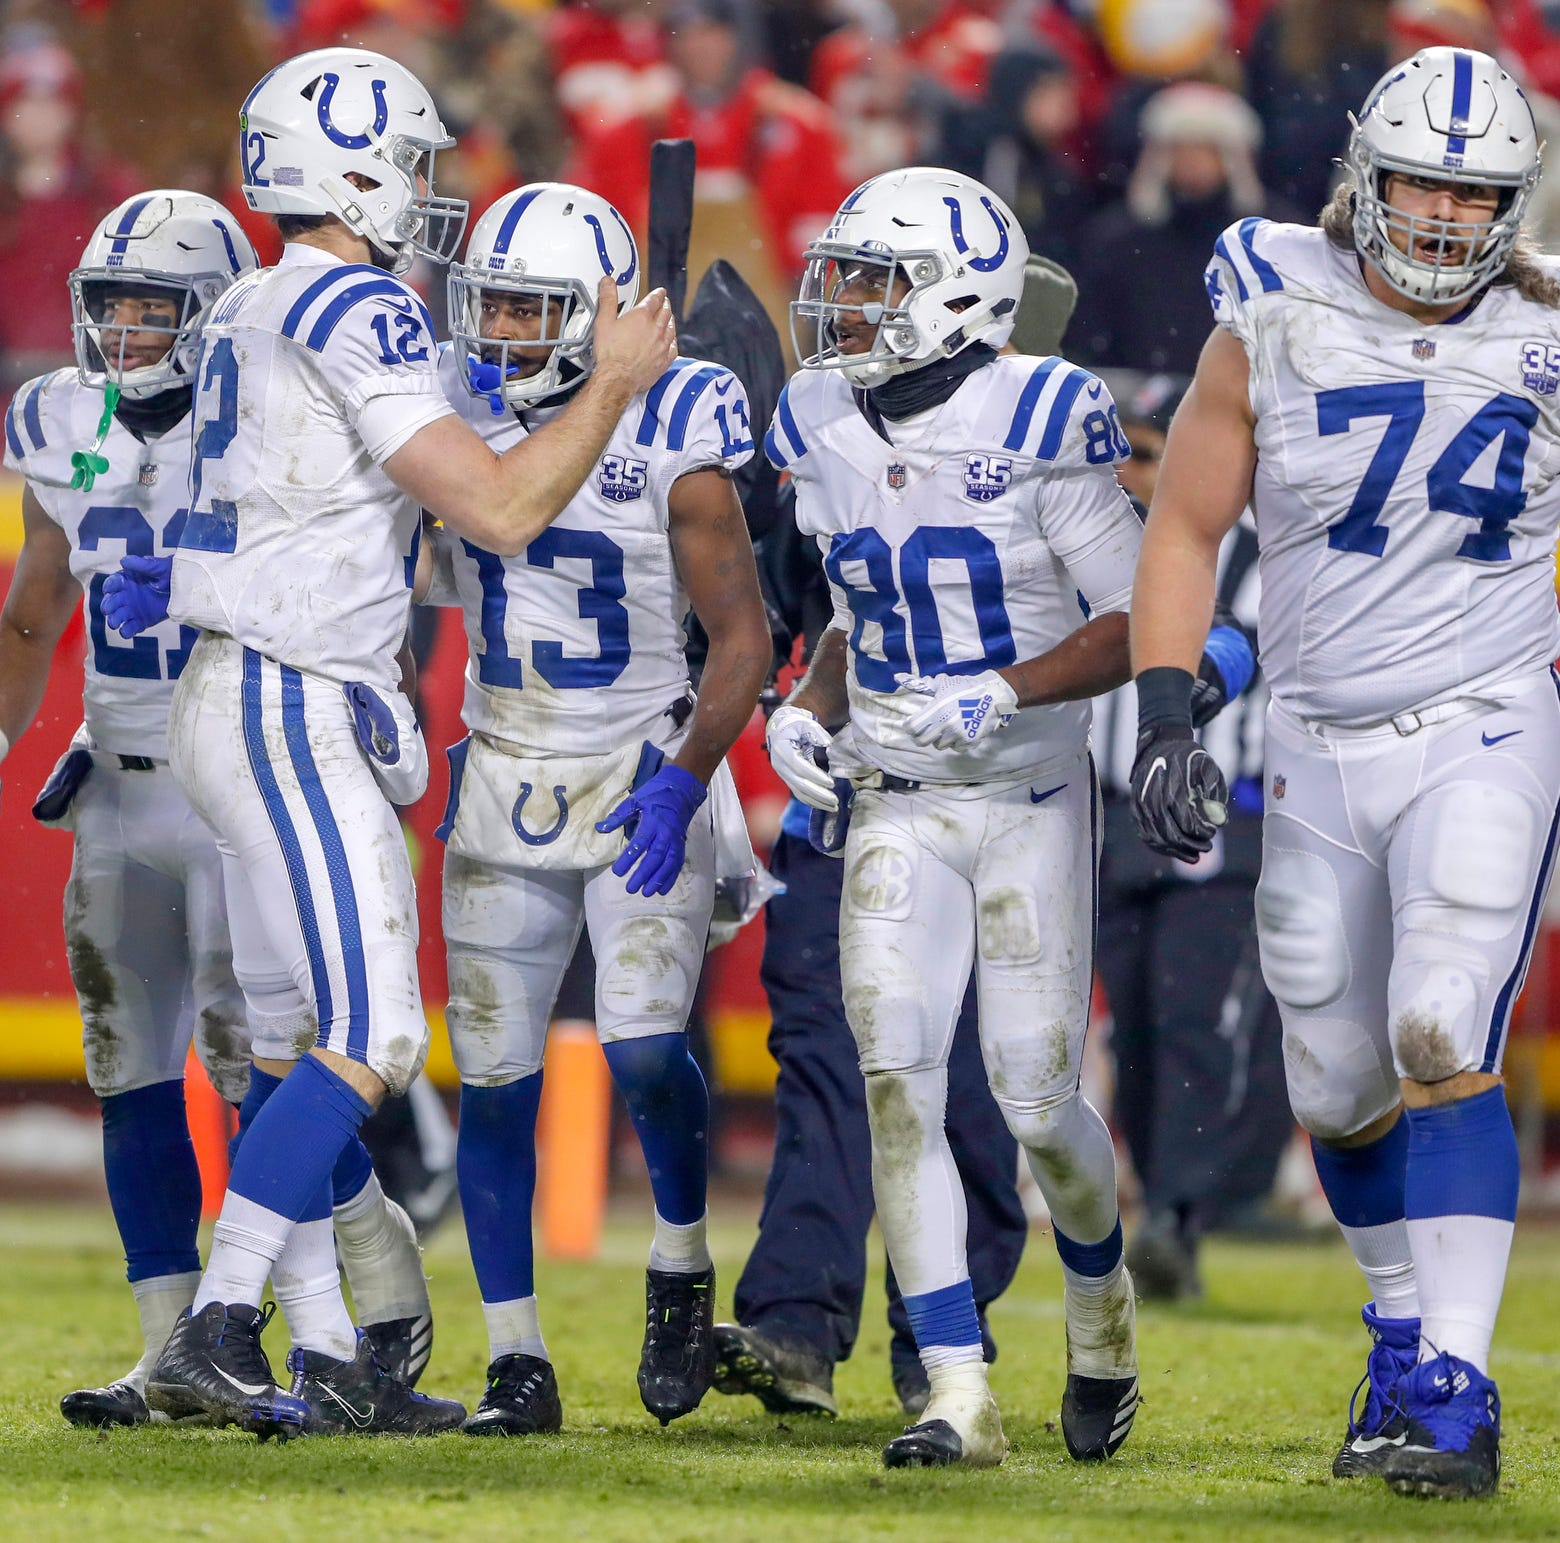 This is the Indianapolis Colts 2019 schedule